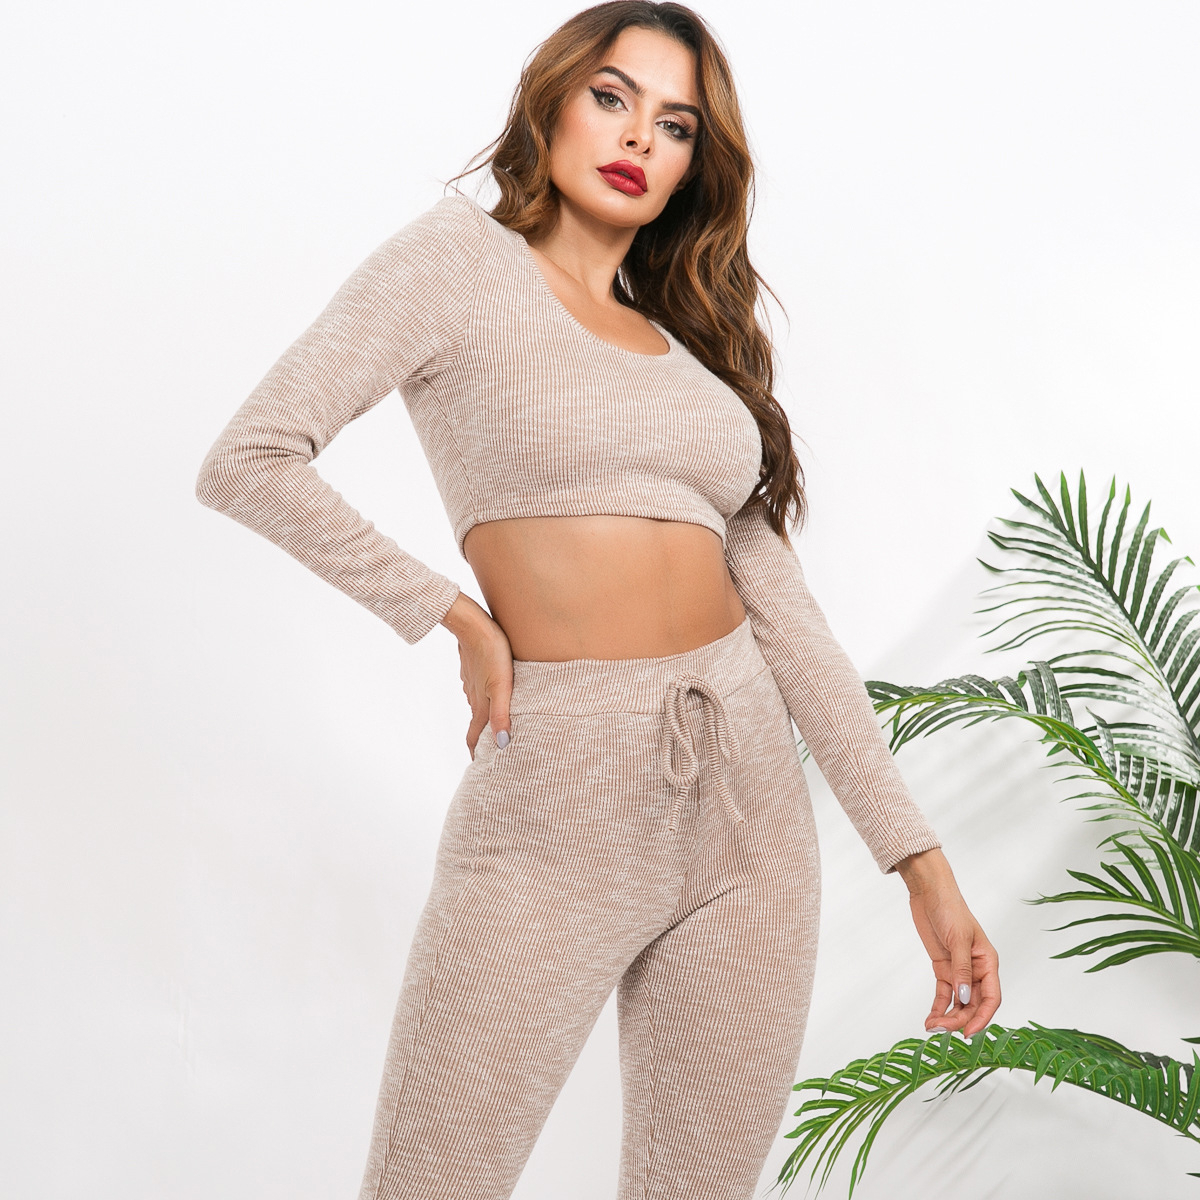 Gray Two Piece Set Women Club Outfits Ribbed Knitted Suit Long Sleeve Crop Top And Skinny Pants Female Tracksuits for Women Set